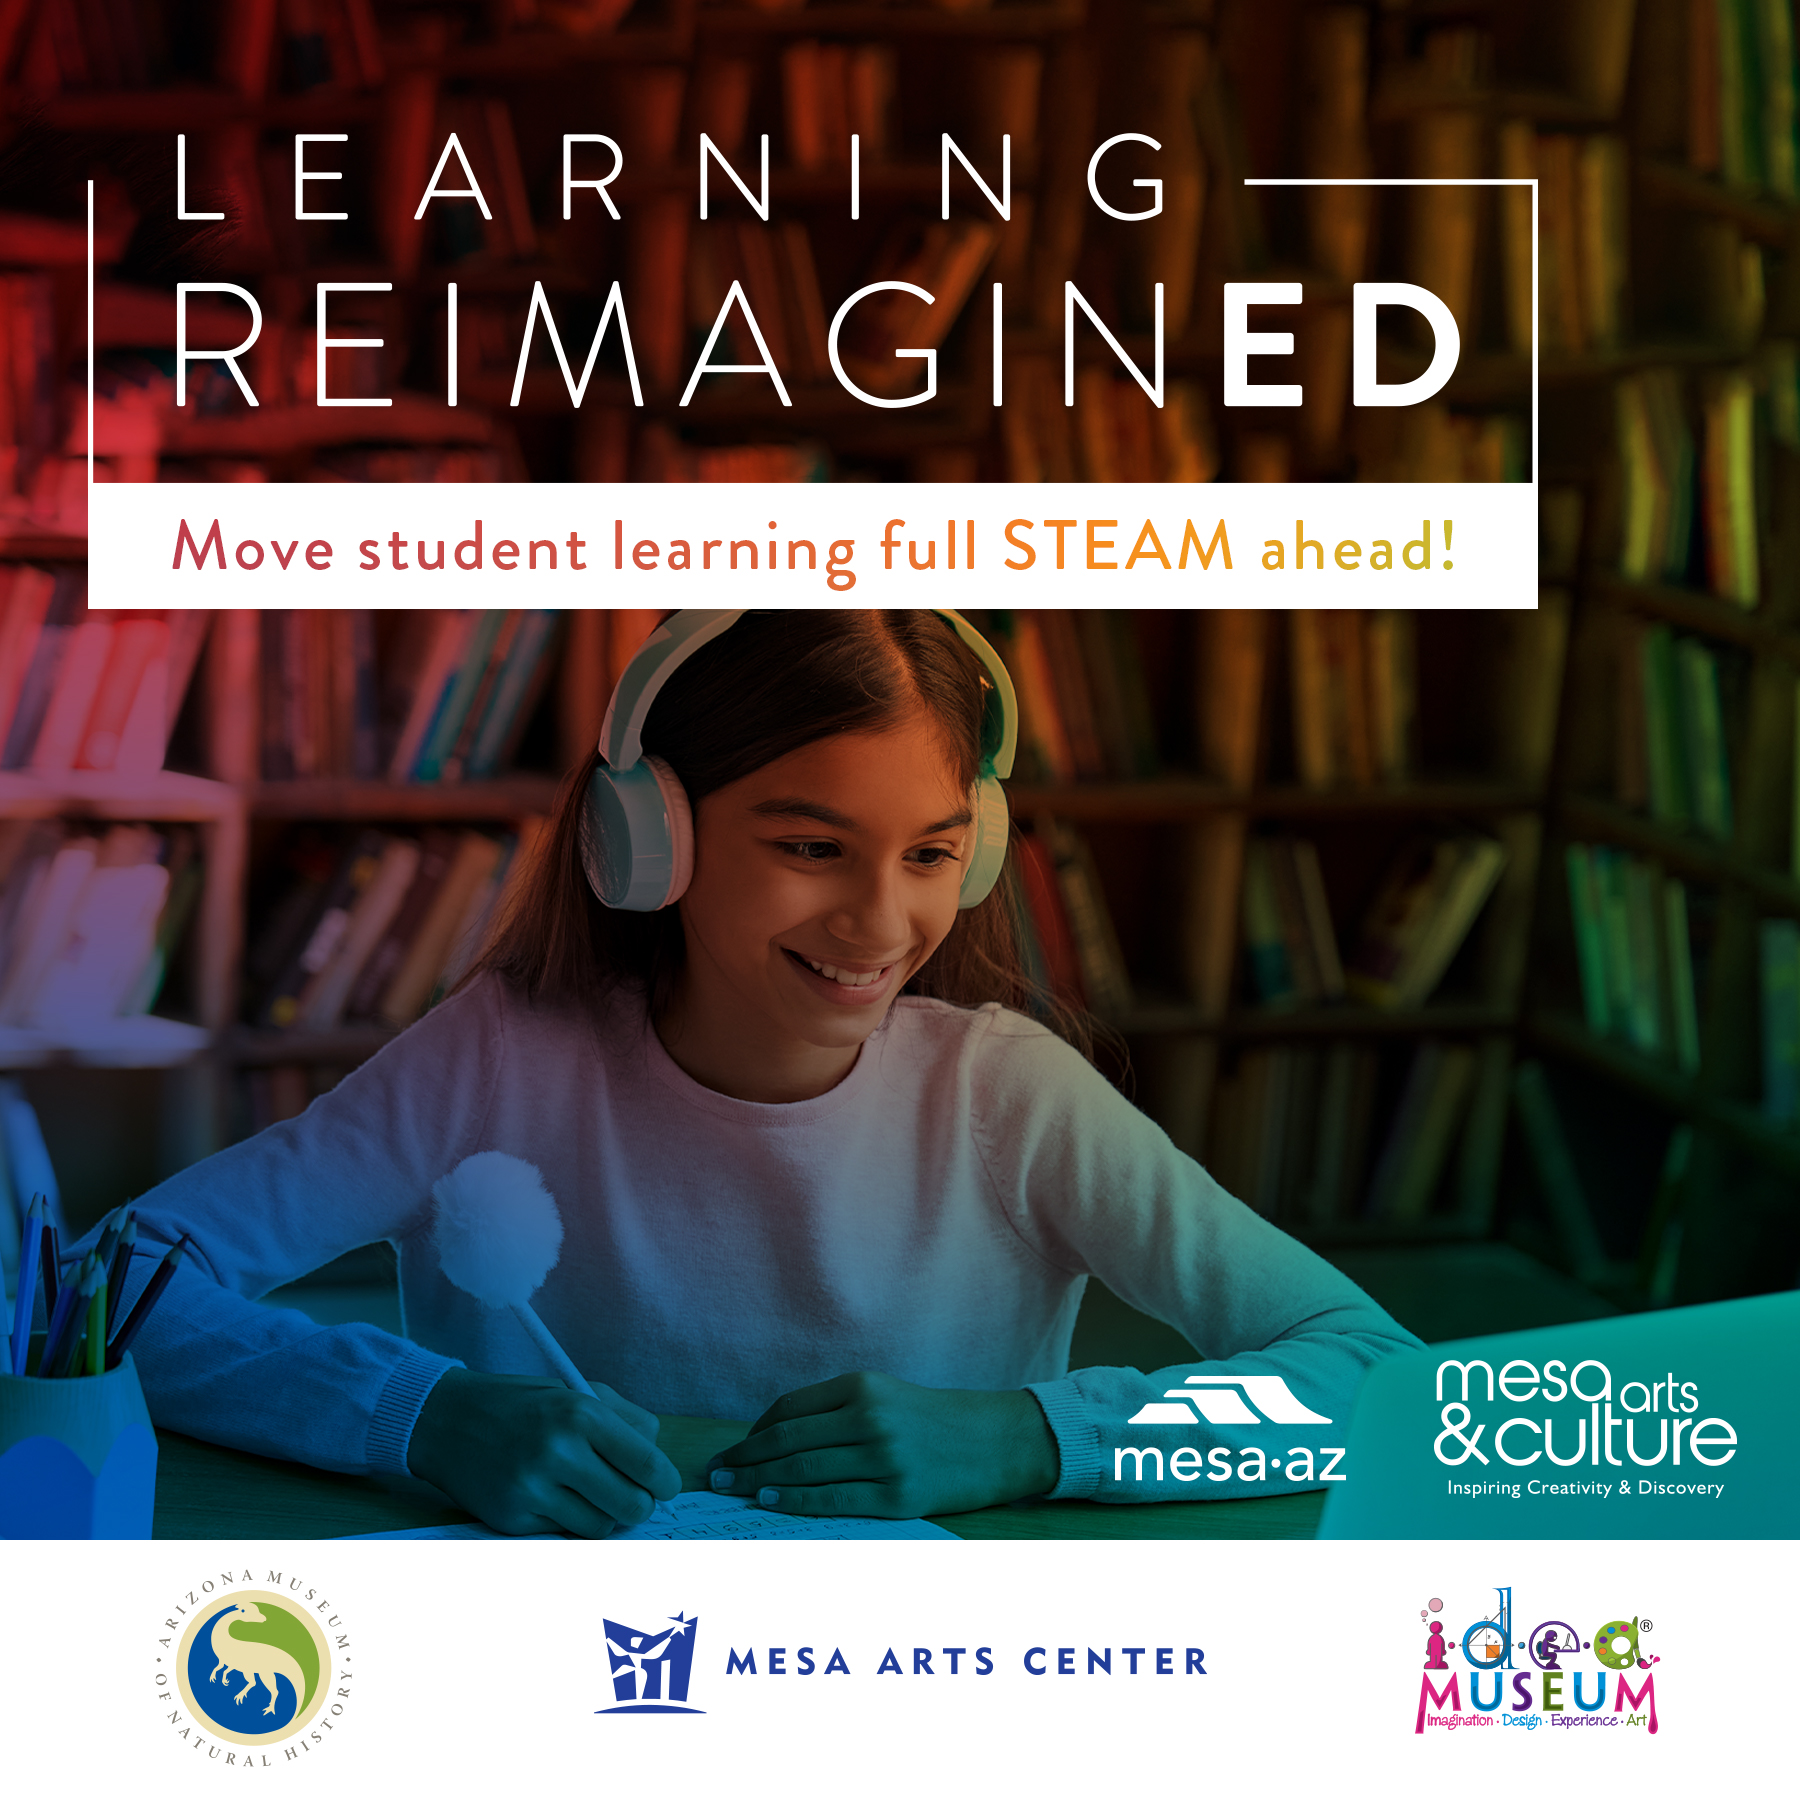 Learning Reimagined: Move student learning full steam ahead